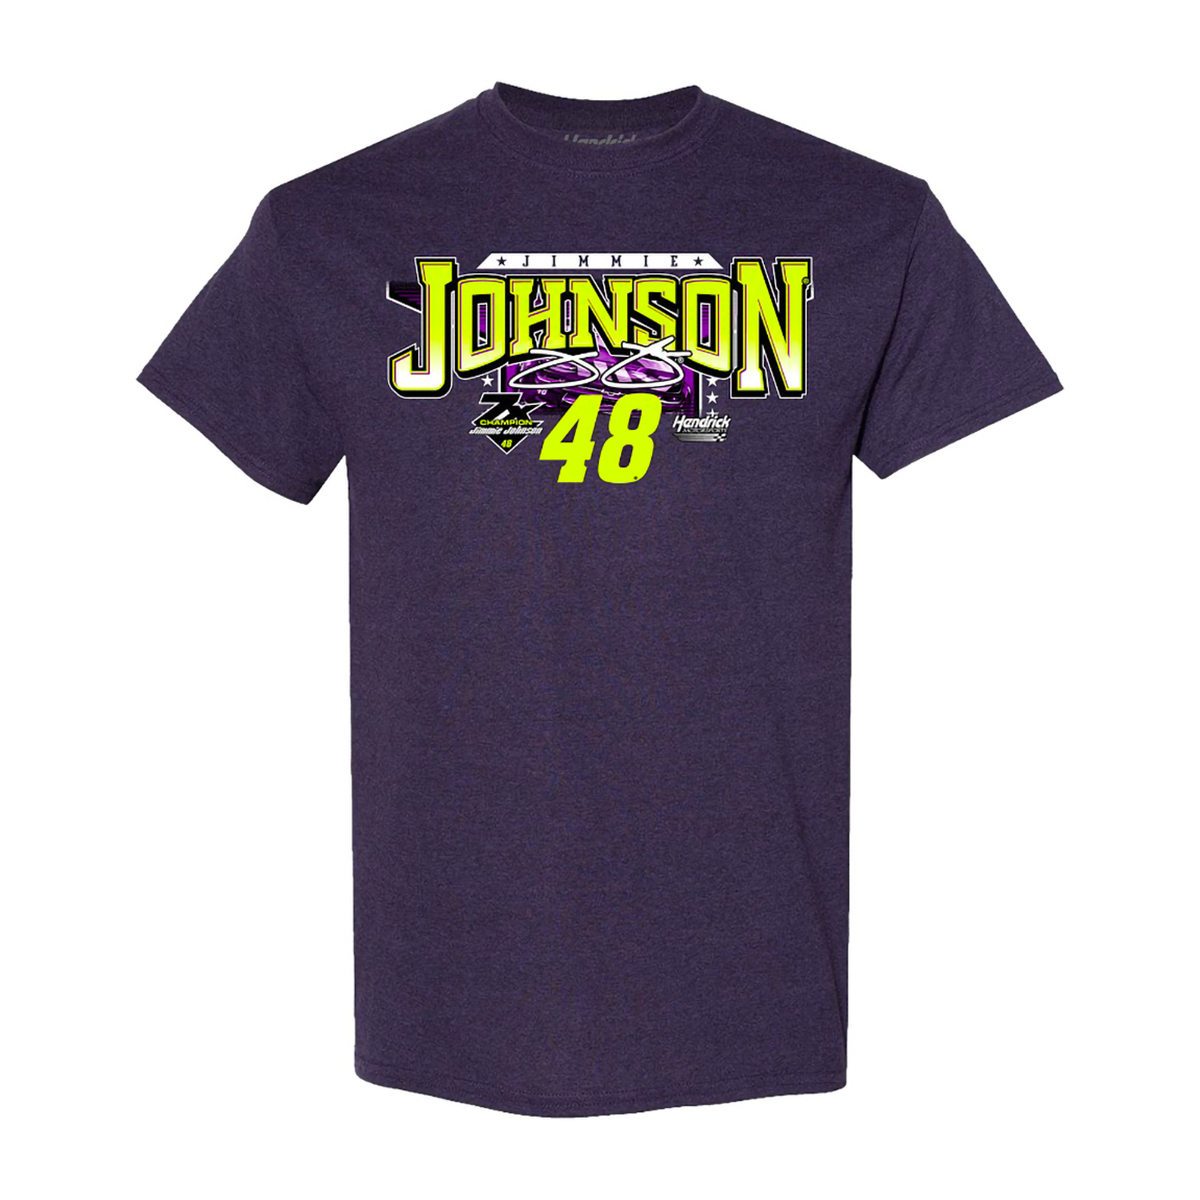 Jimmie Johnson #48 2020 Ally Schedule T-shirt